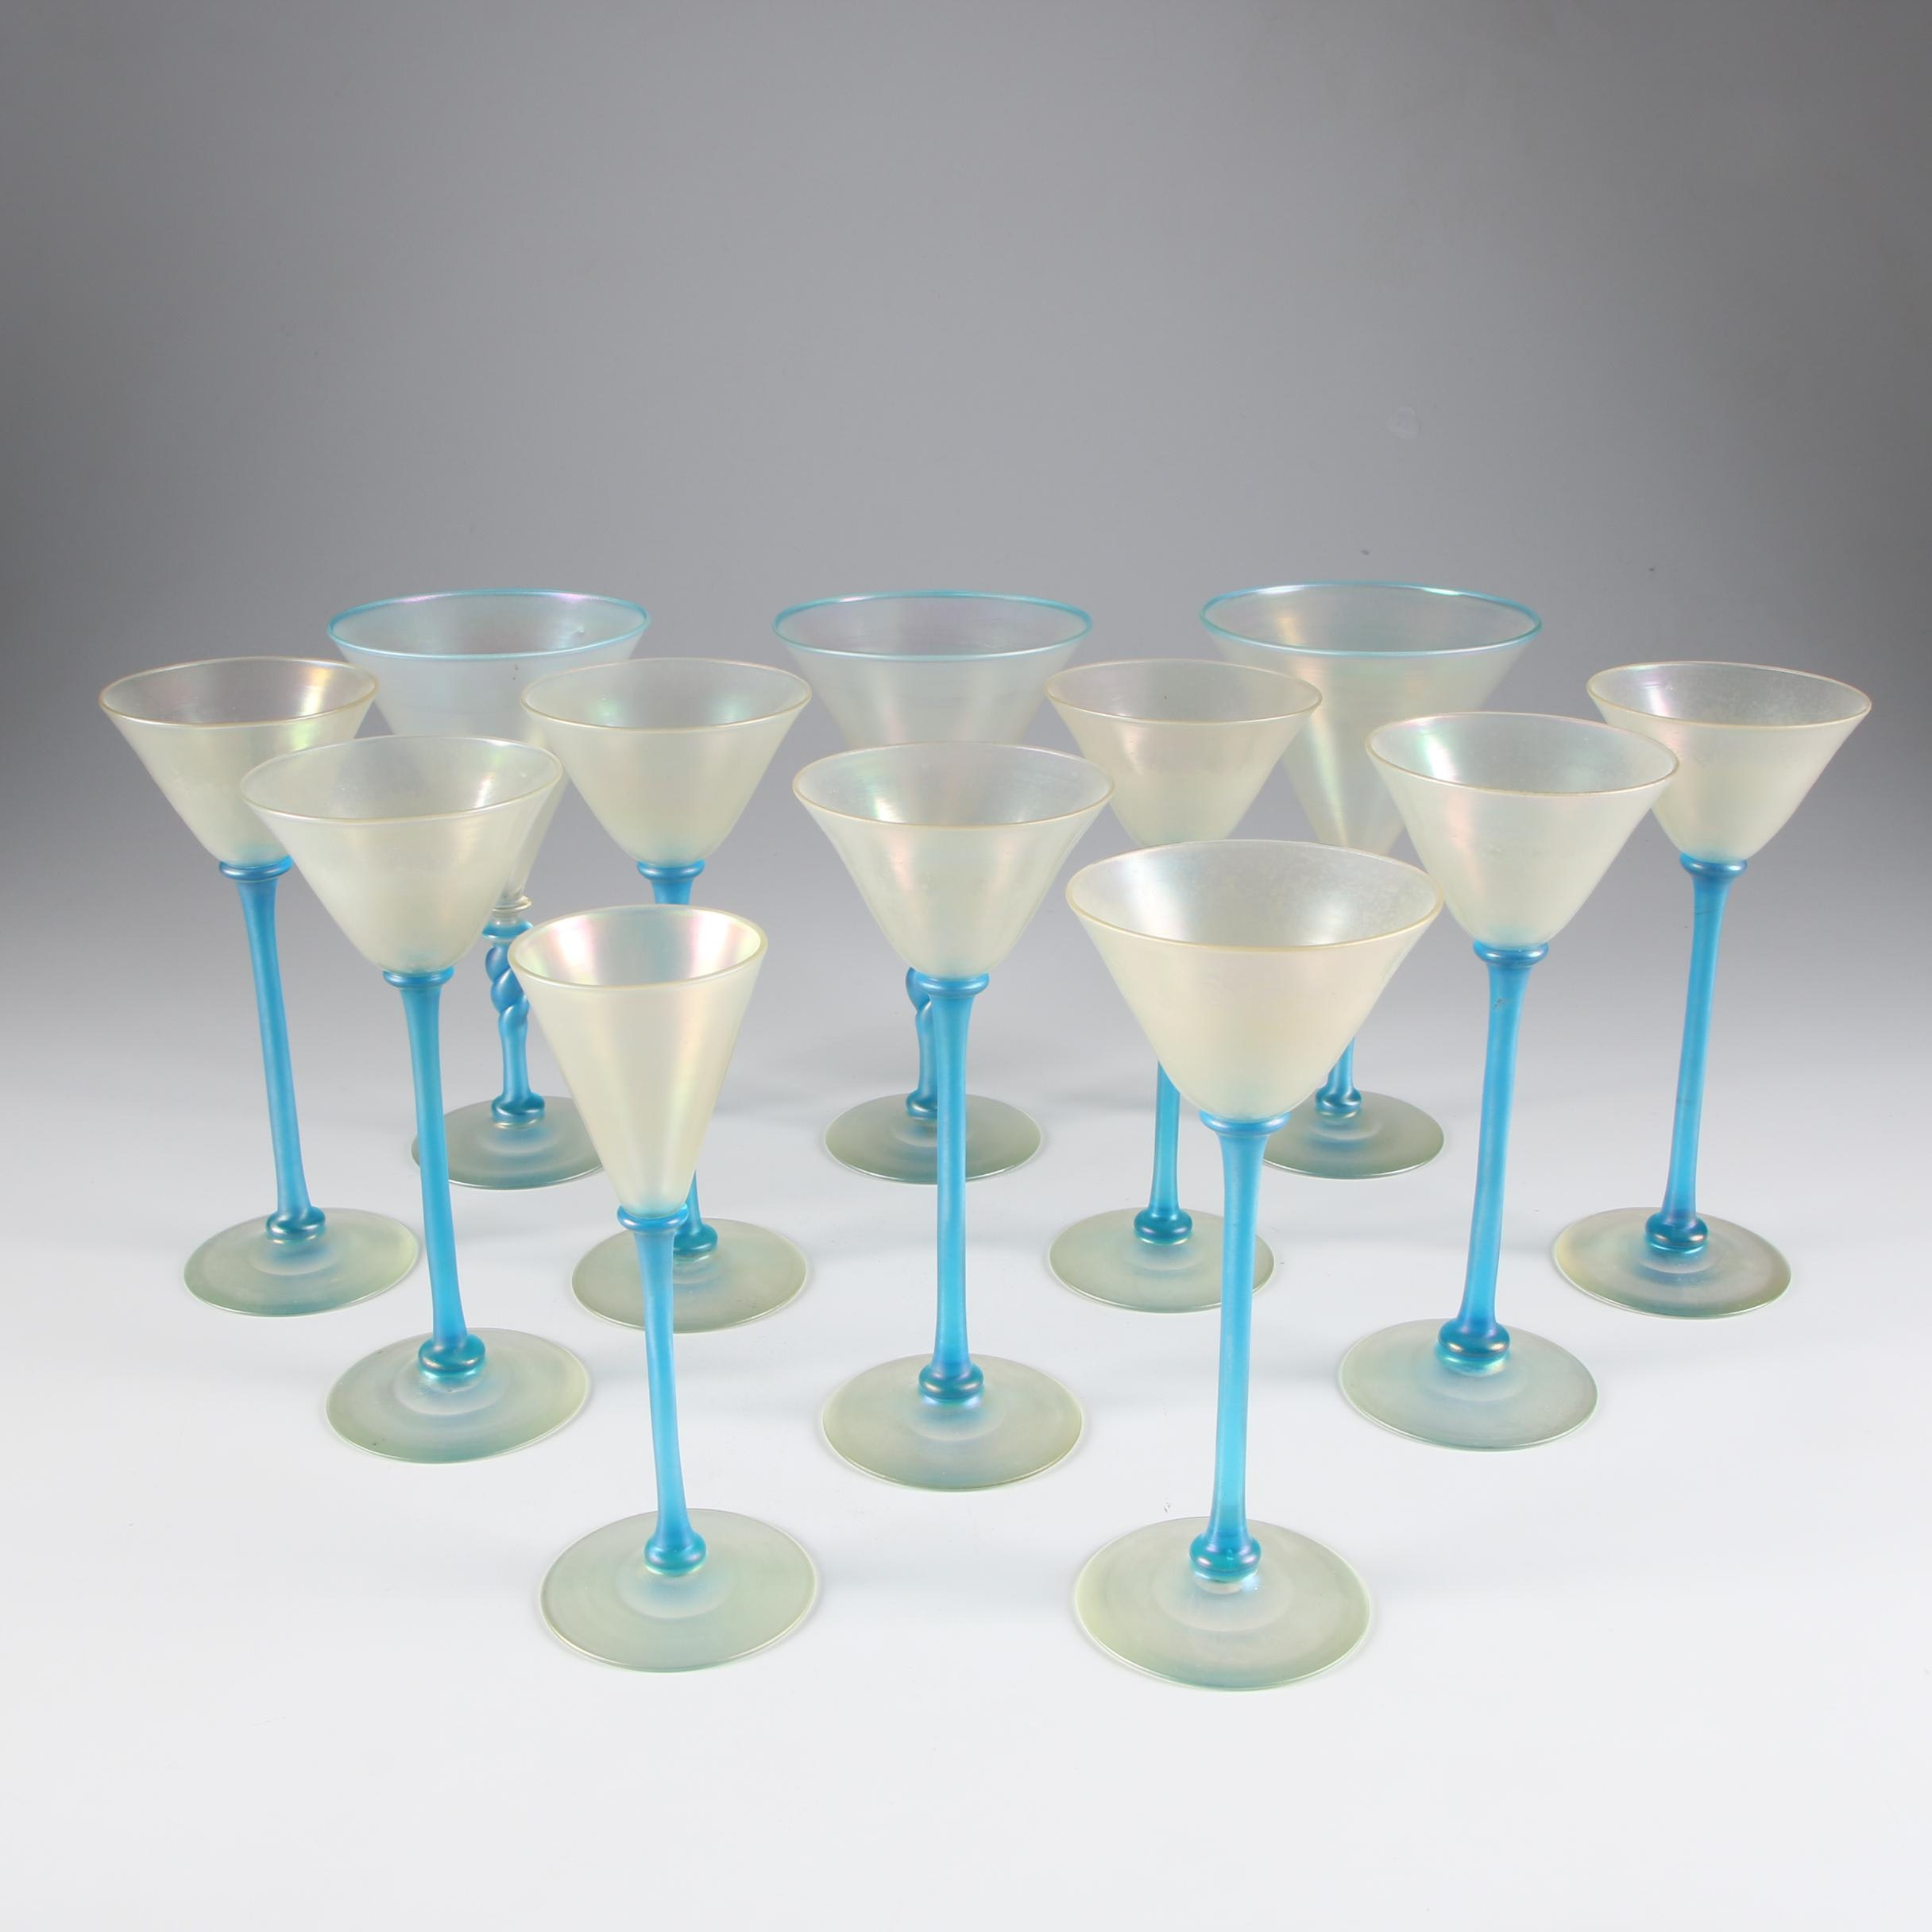 Steuben Cyprian and Celeste Blue Art Glass Stemware, Early 20th Century